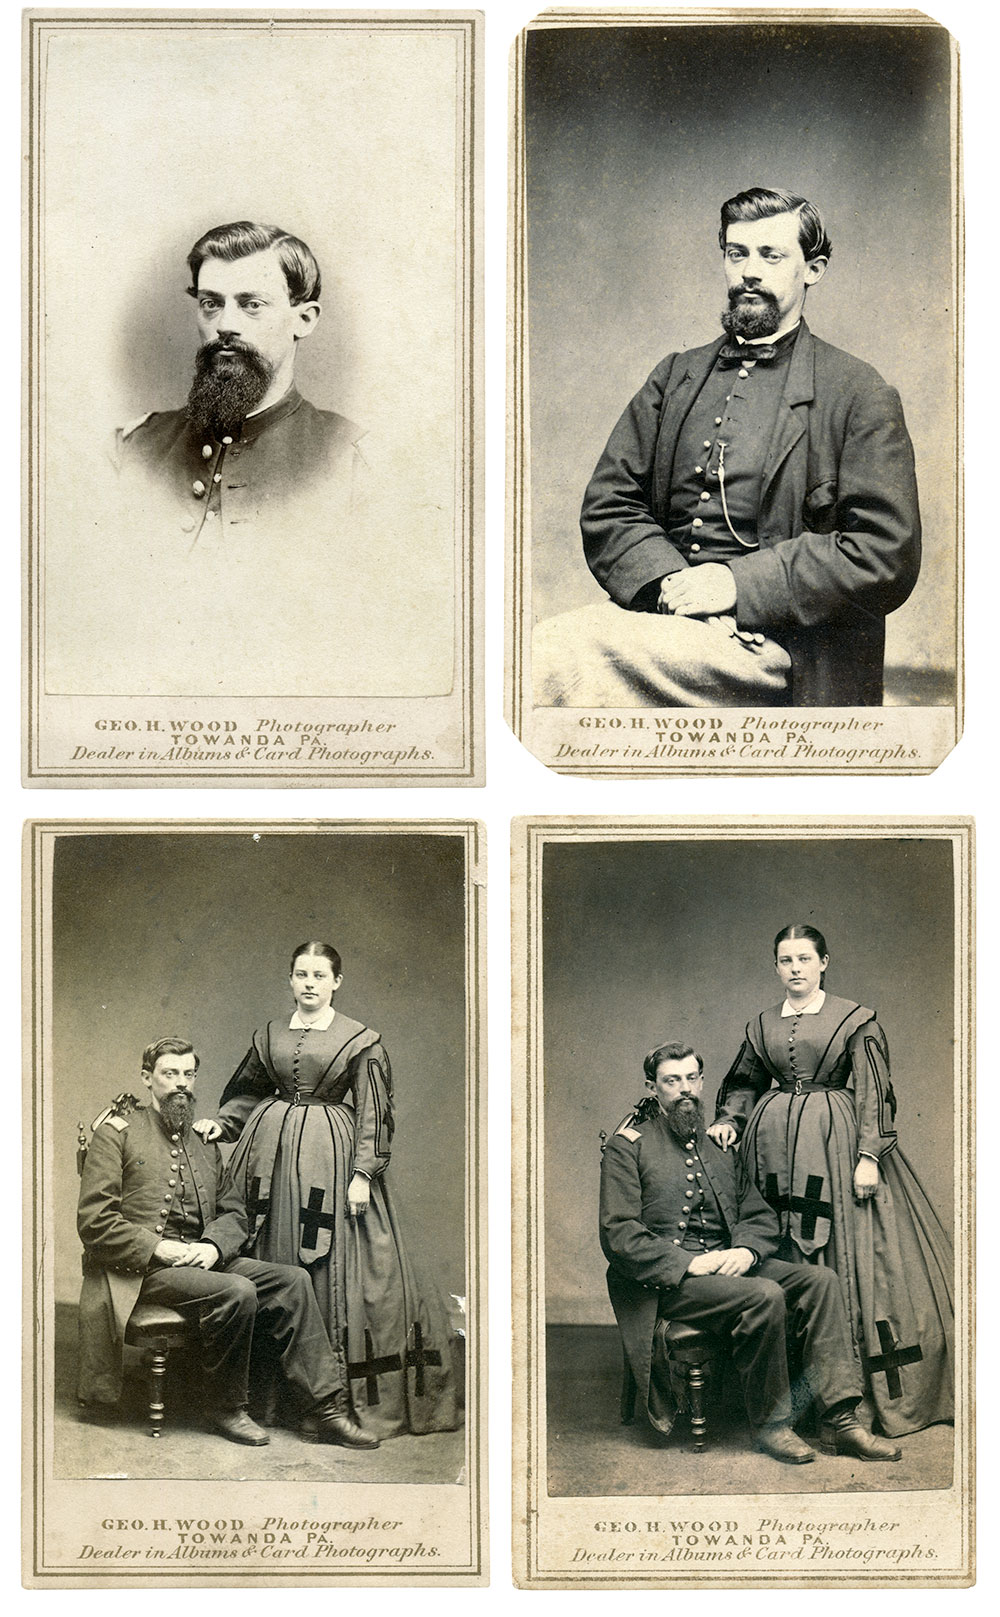 Cartes de visite by George Wood of Towanda, Pa. Collection of Andy Kmiec.